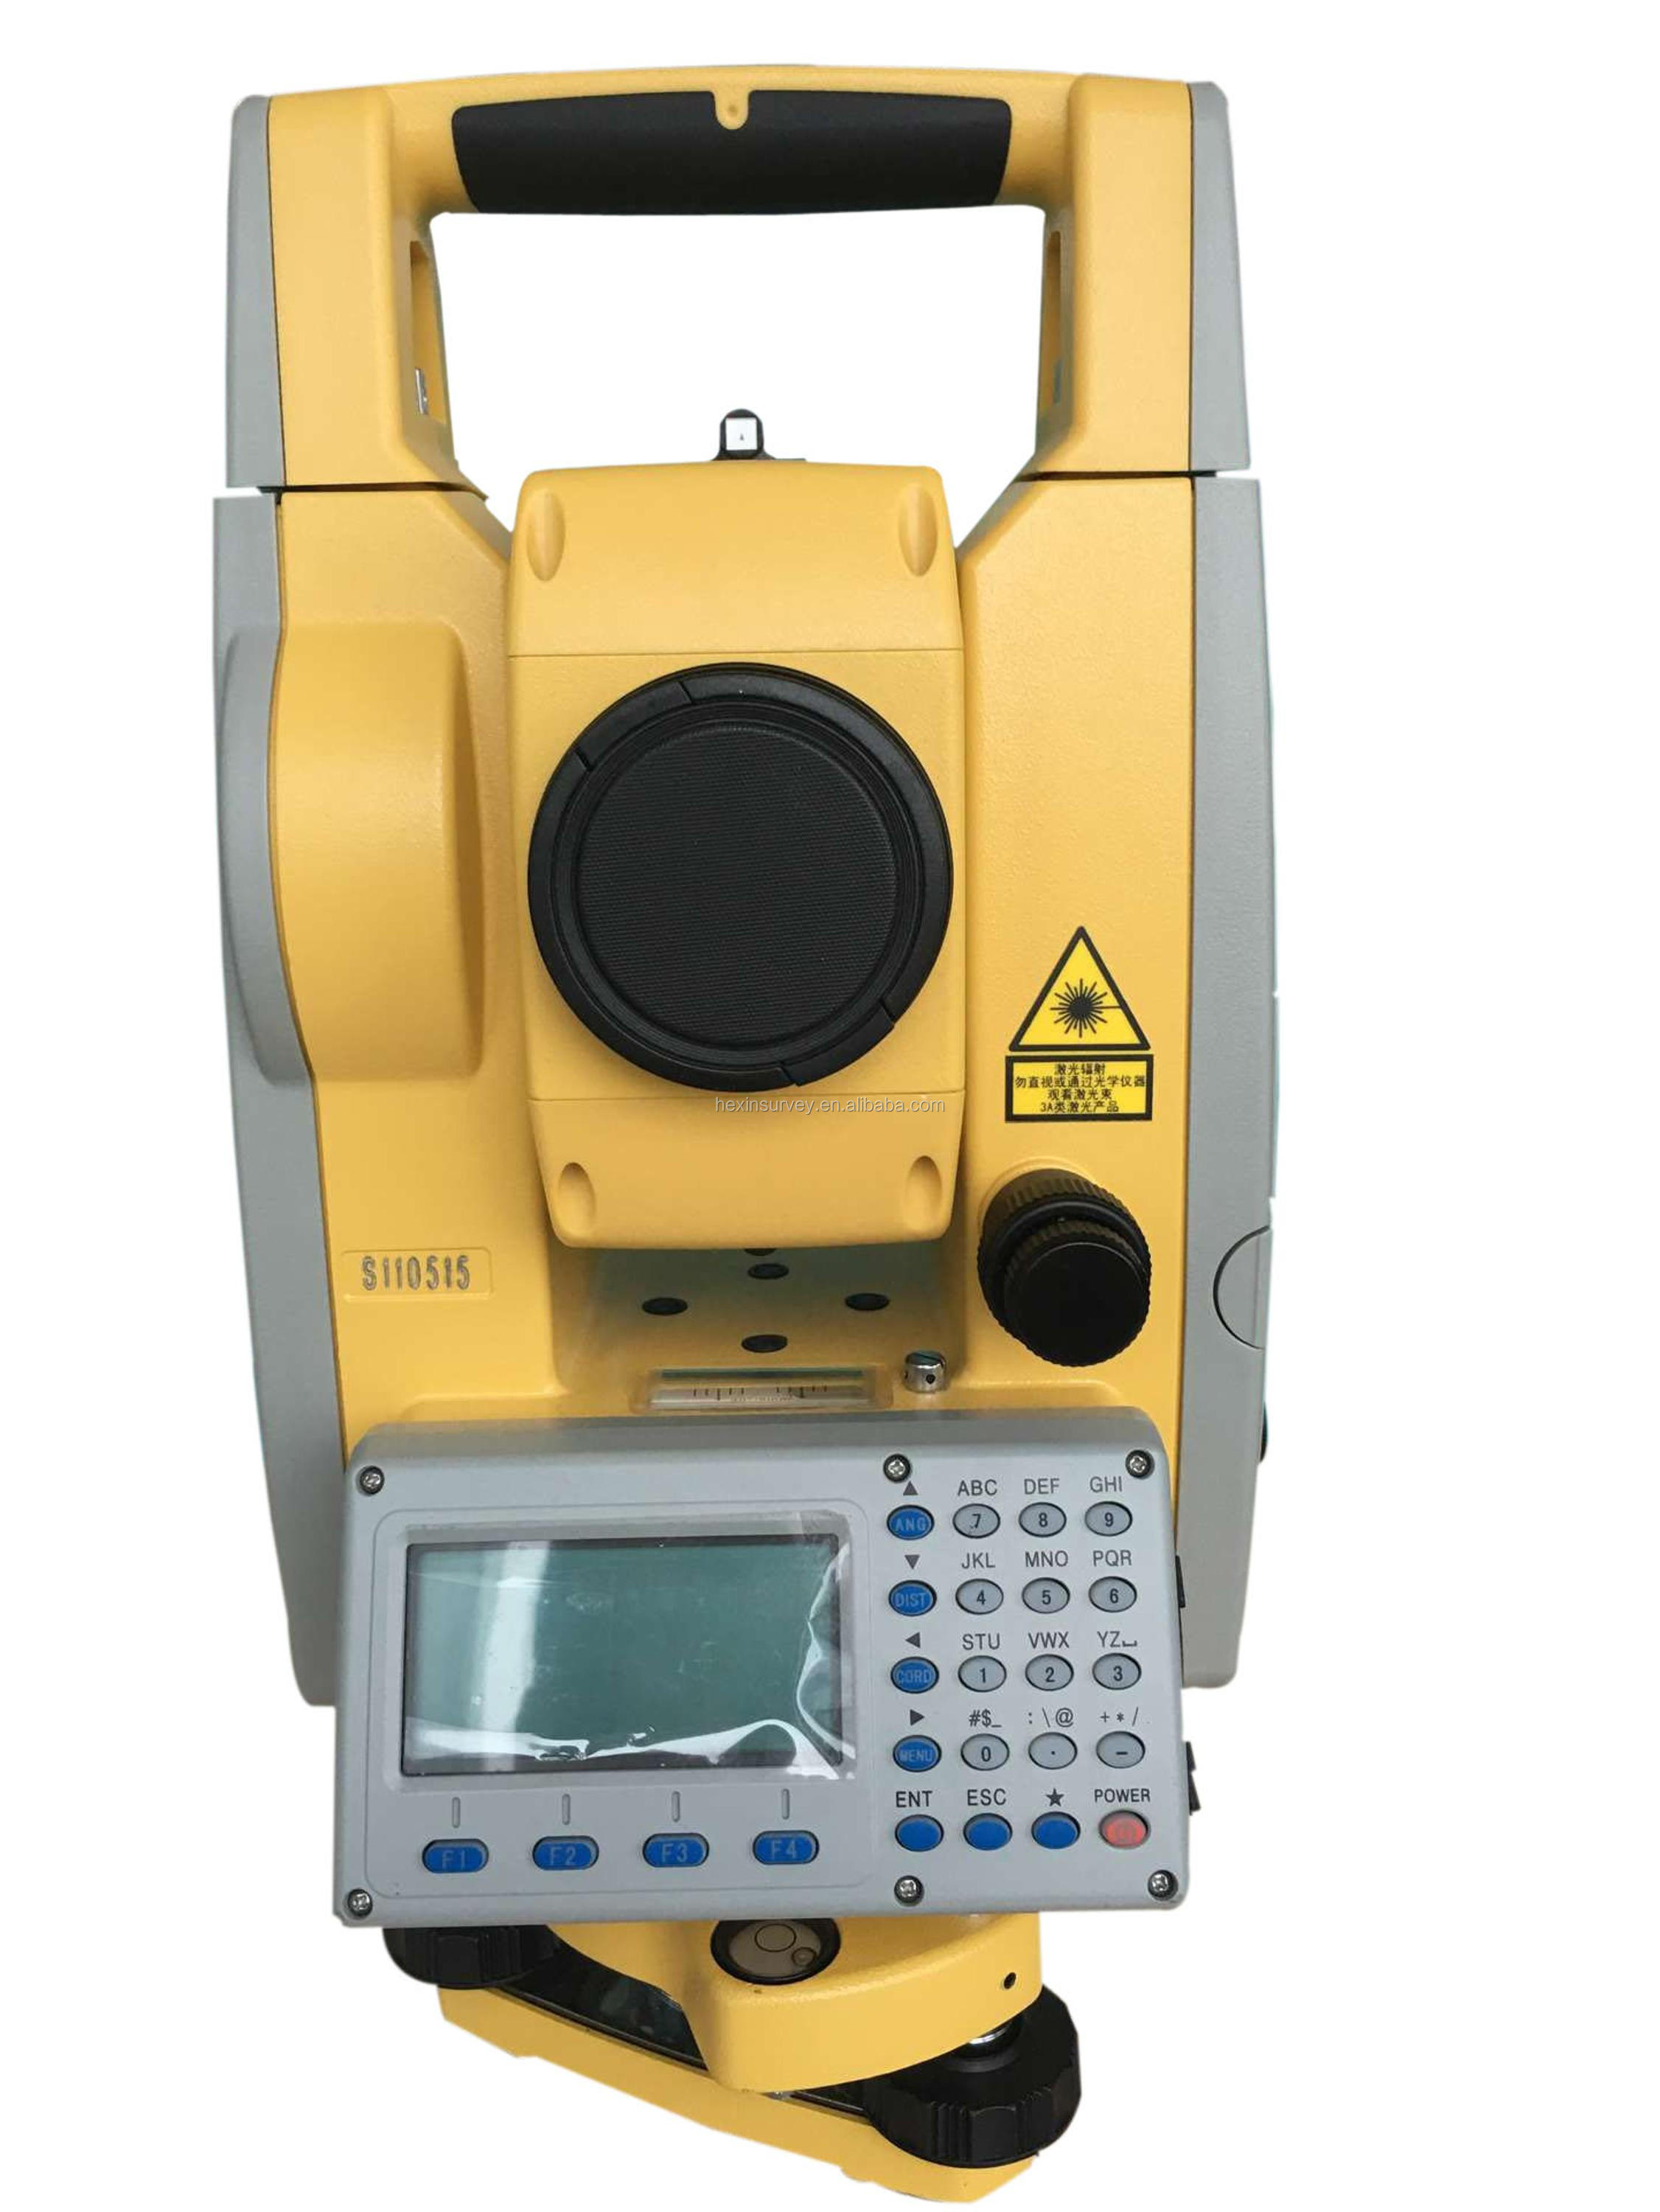 Hot sale GDF121-Y total station tribrach with adaptor